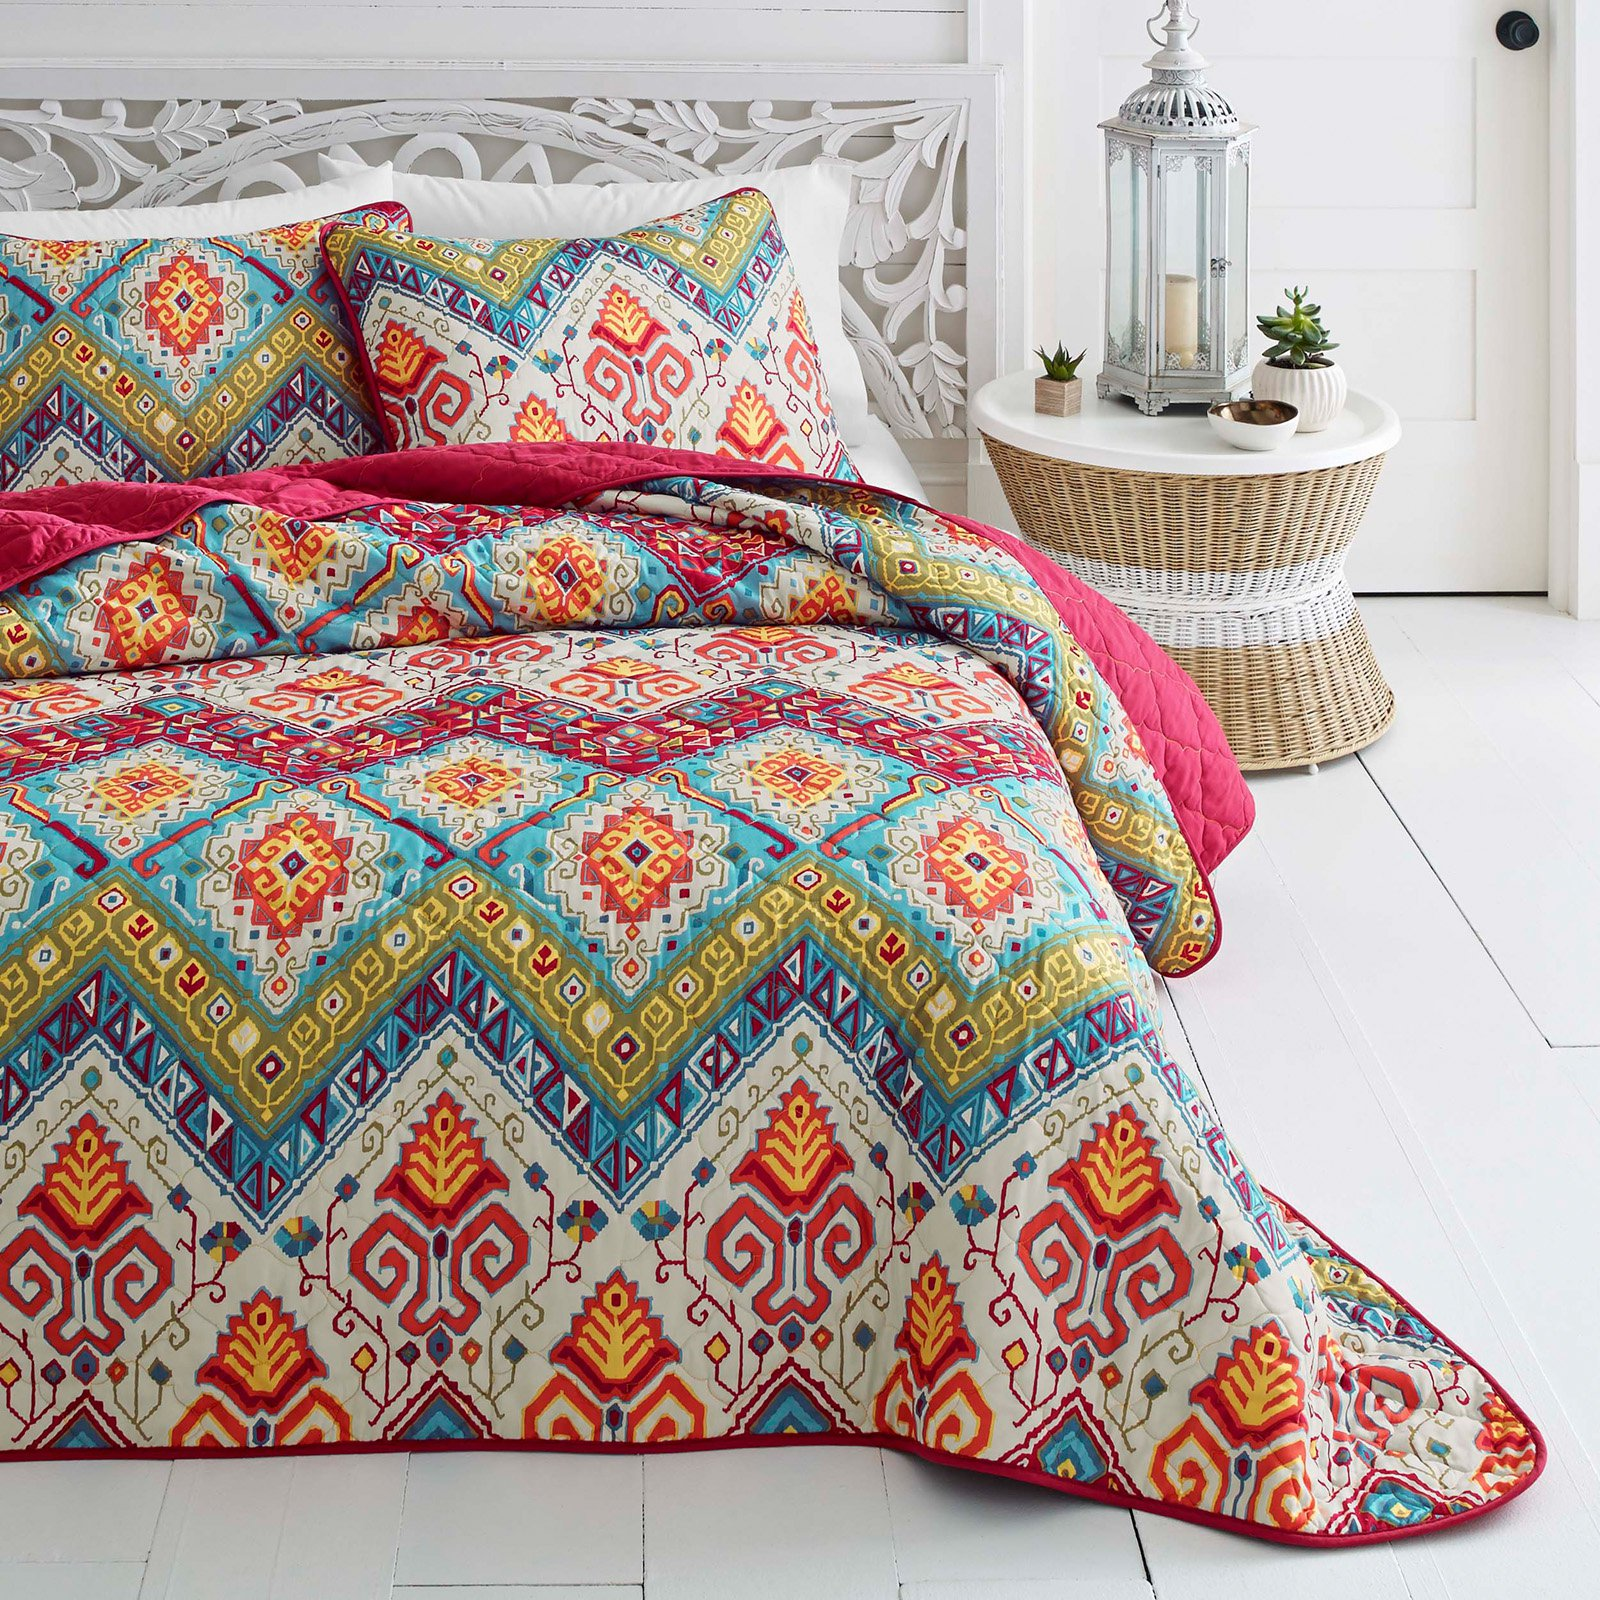 Azalea Skye Moroccan Nights 2 Piece Quilt Set, Twin by Revman International